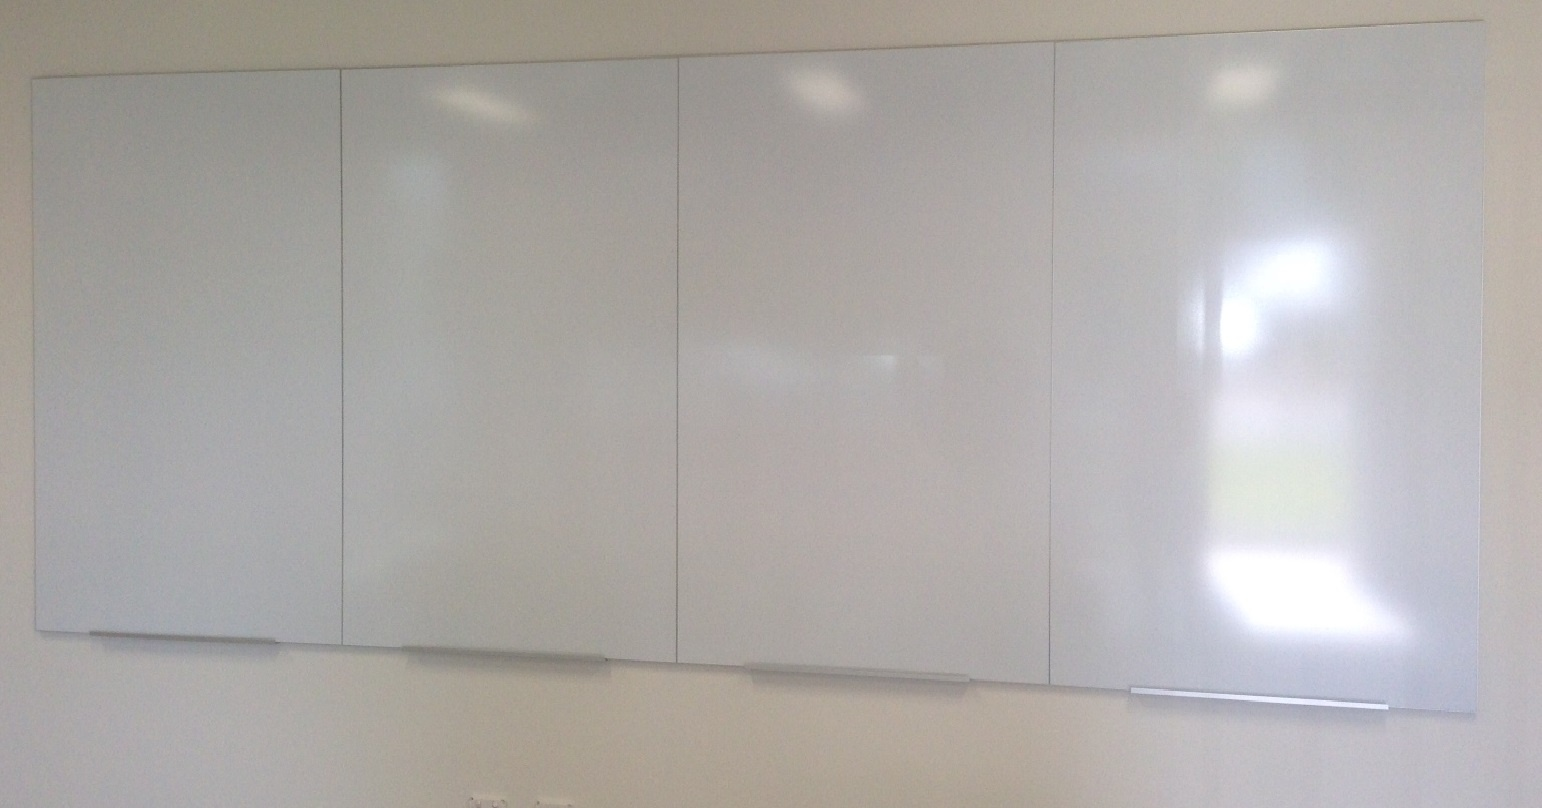 Commerical Whitboard LX Edge Frame *Butt-joined* to make Whiteboard Wall